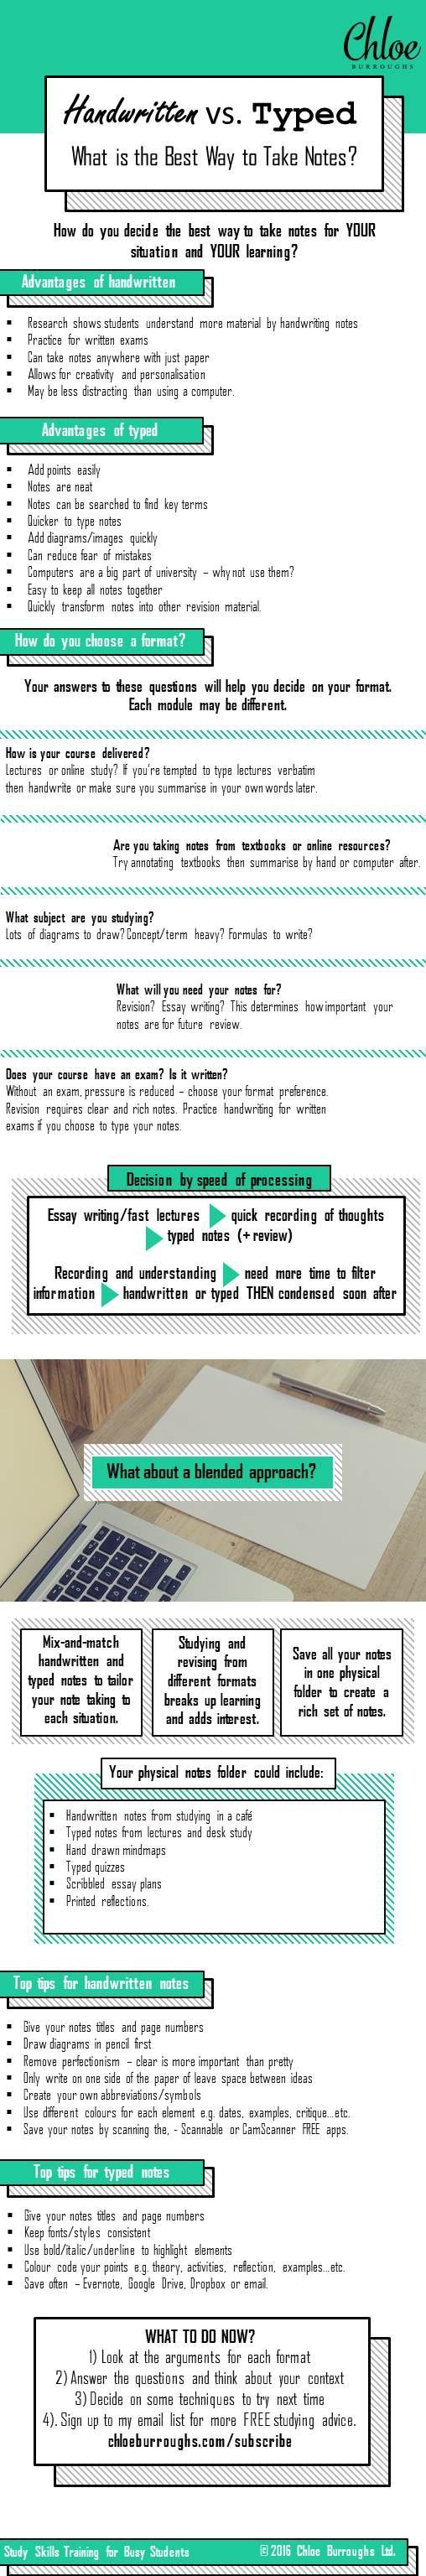 Handwritten or Typed: What is the Best Way to Take Notes